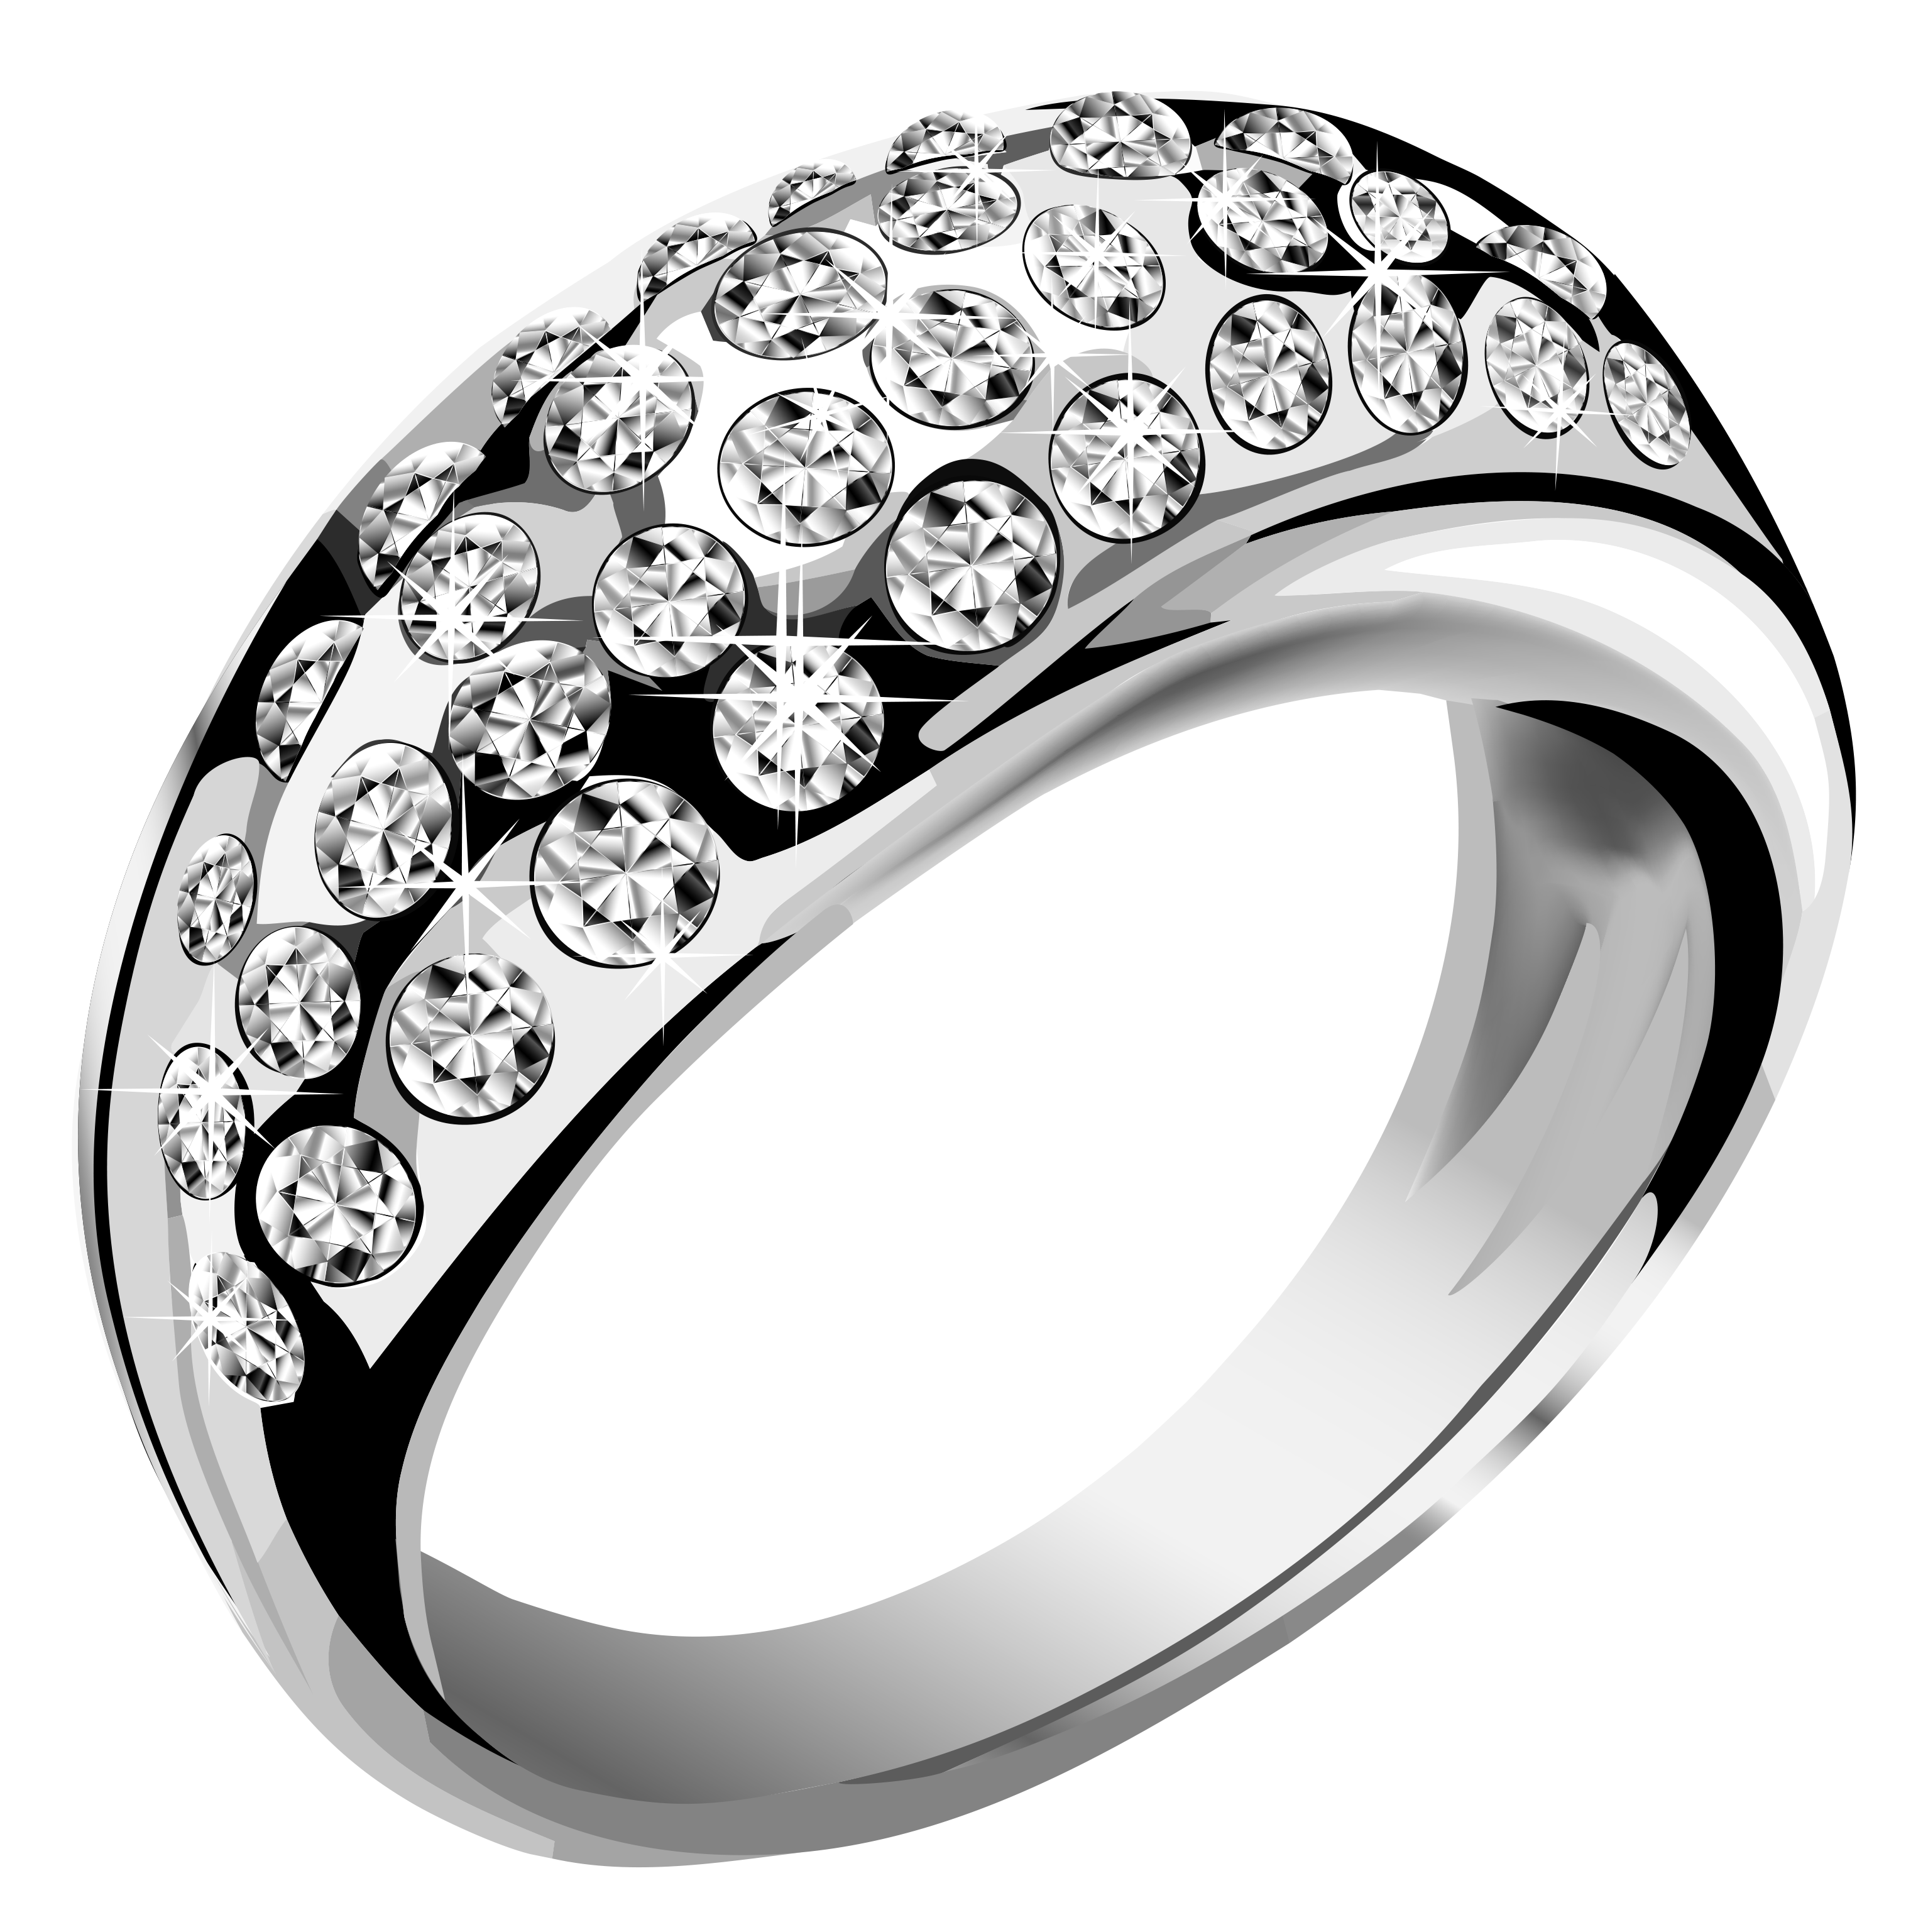 3068x3074 Silver Ring With White Diamonds Png Clipartu200b Gallery